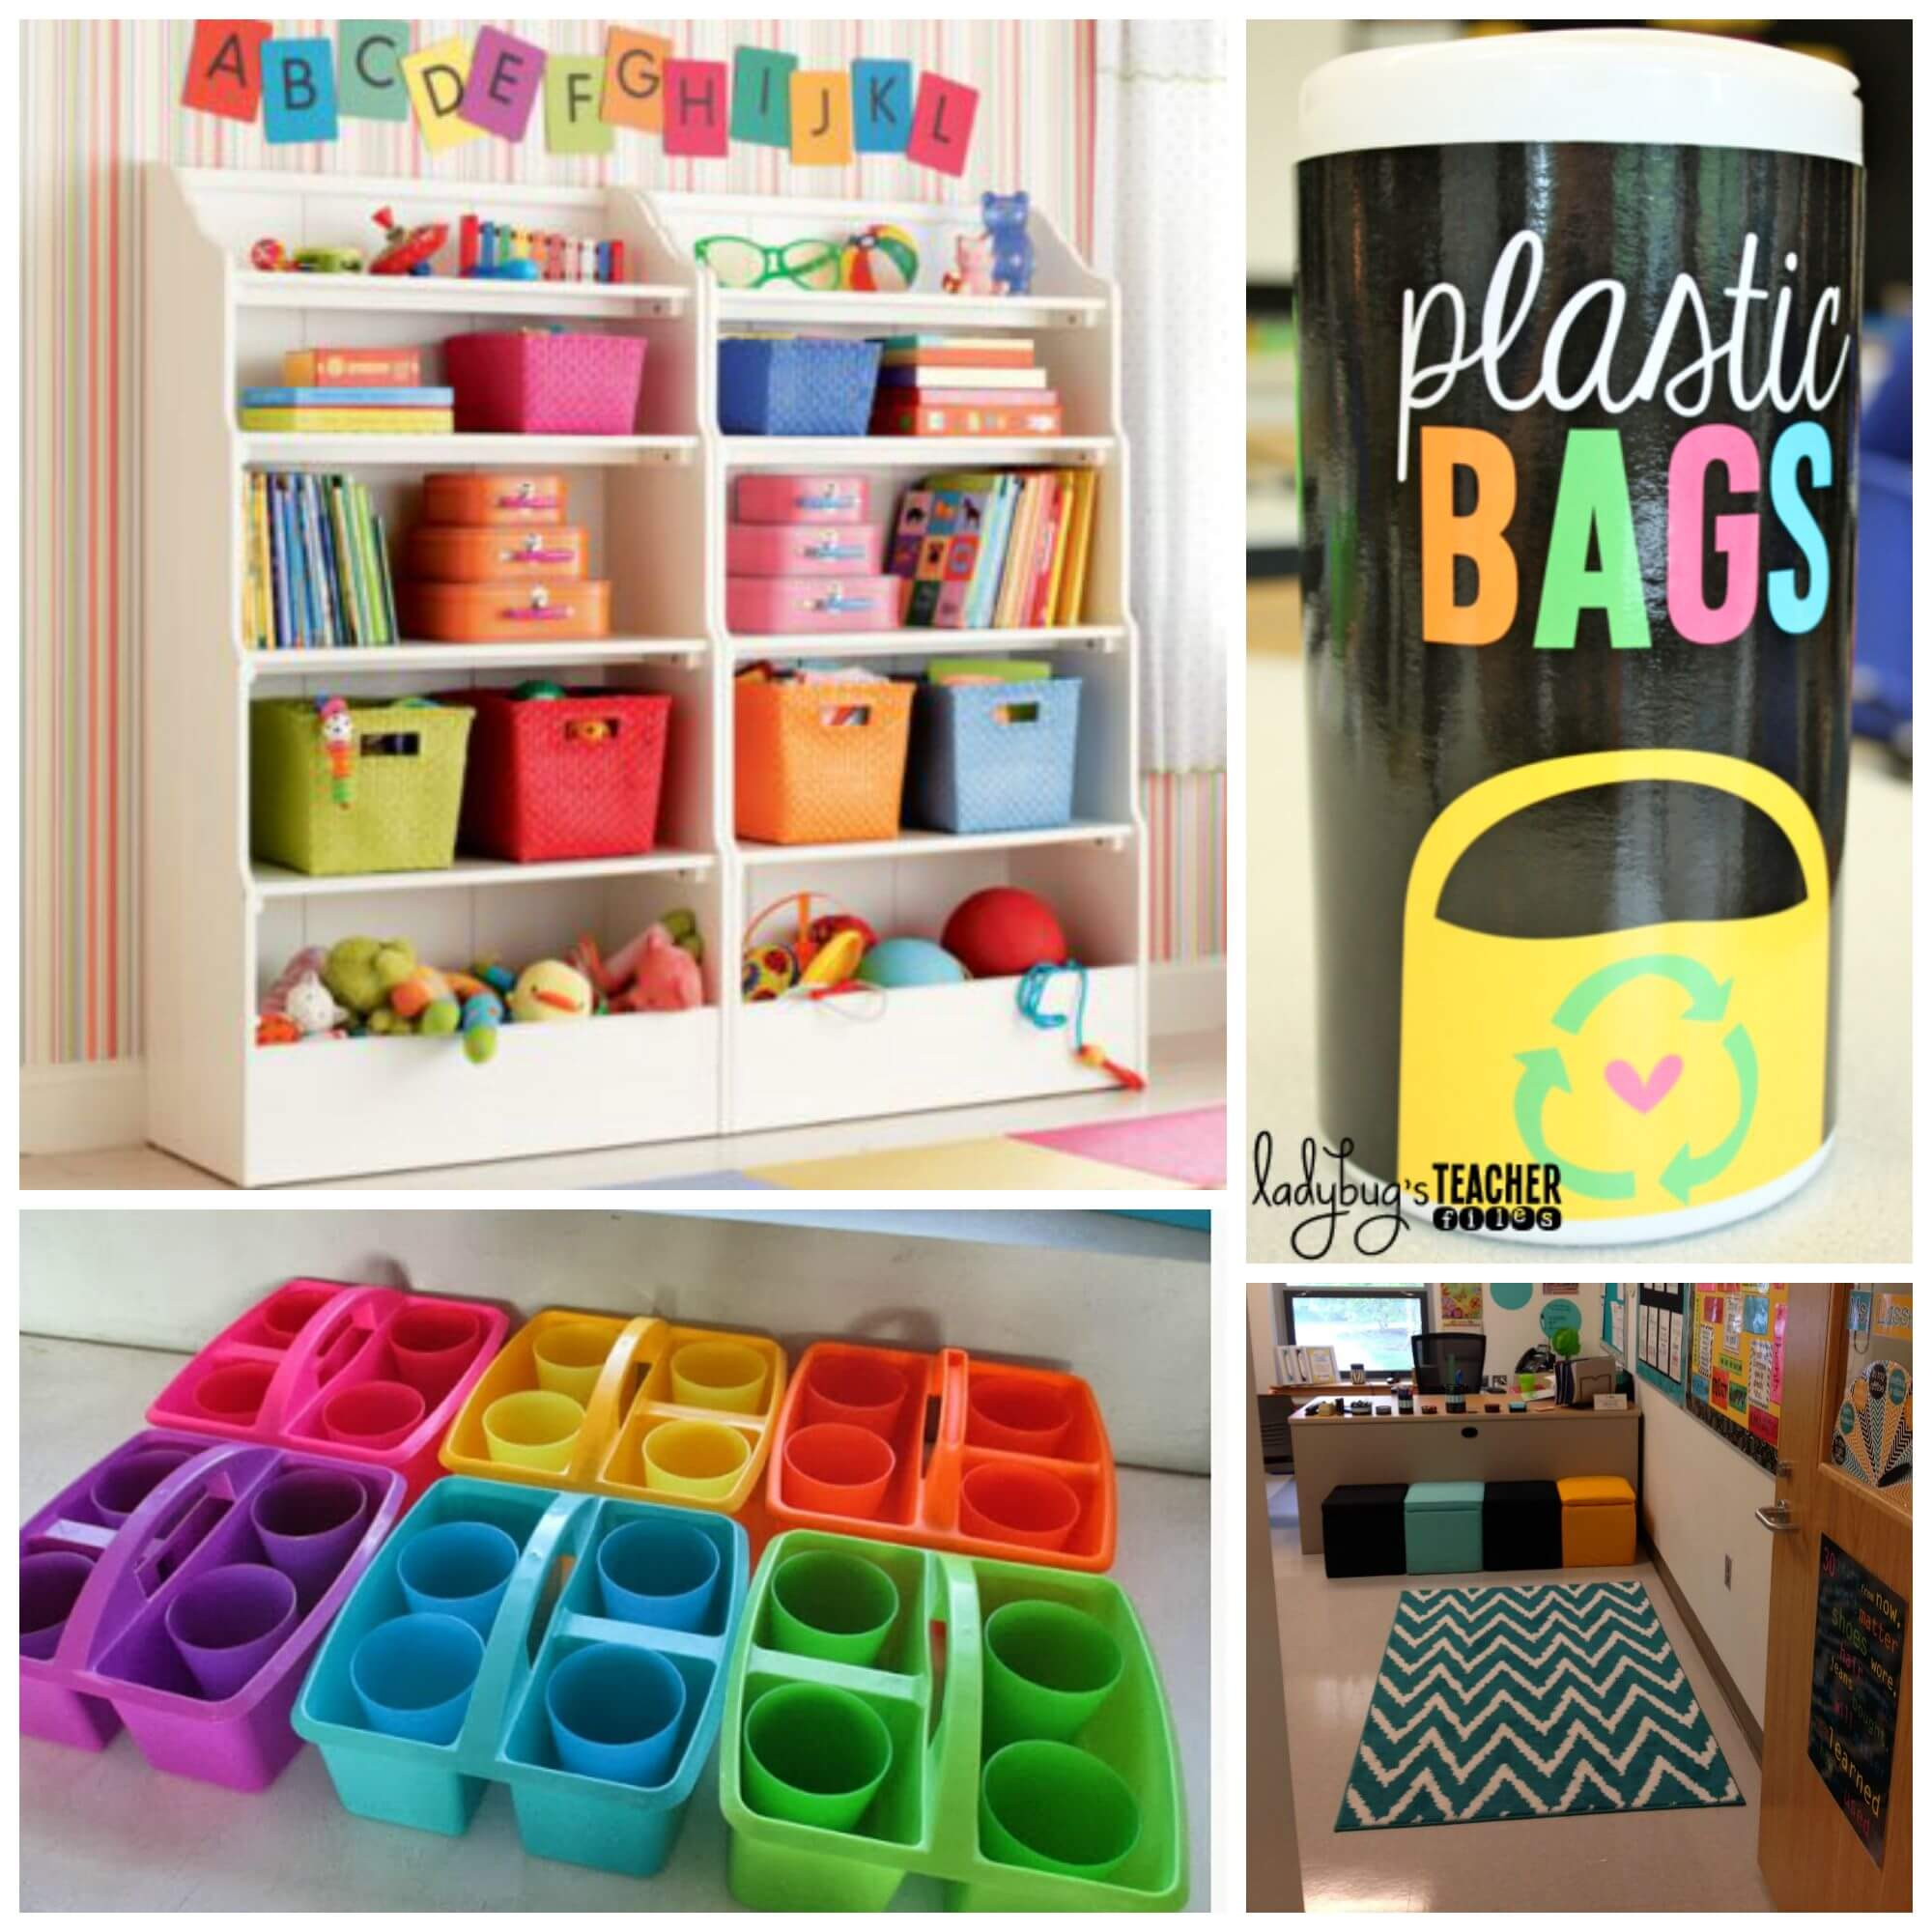 Classroom Ideas For Teachers ~ Inspiring classroom decoration ideas playdough to plato